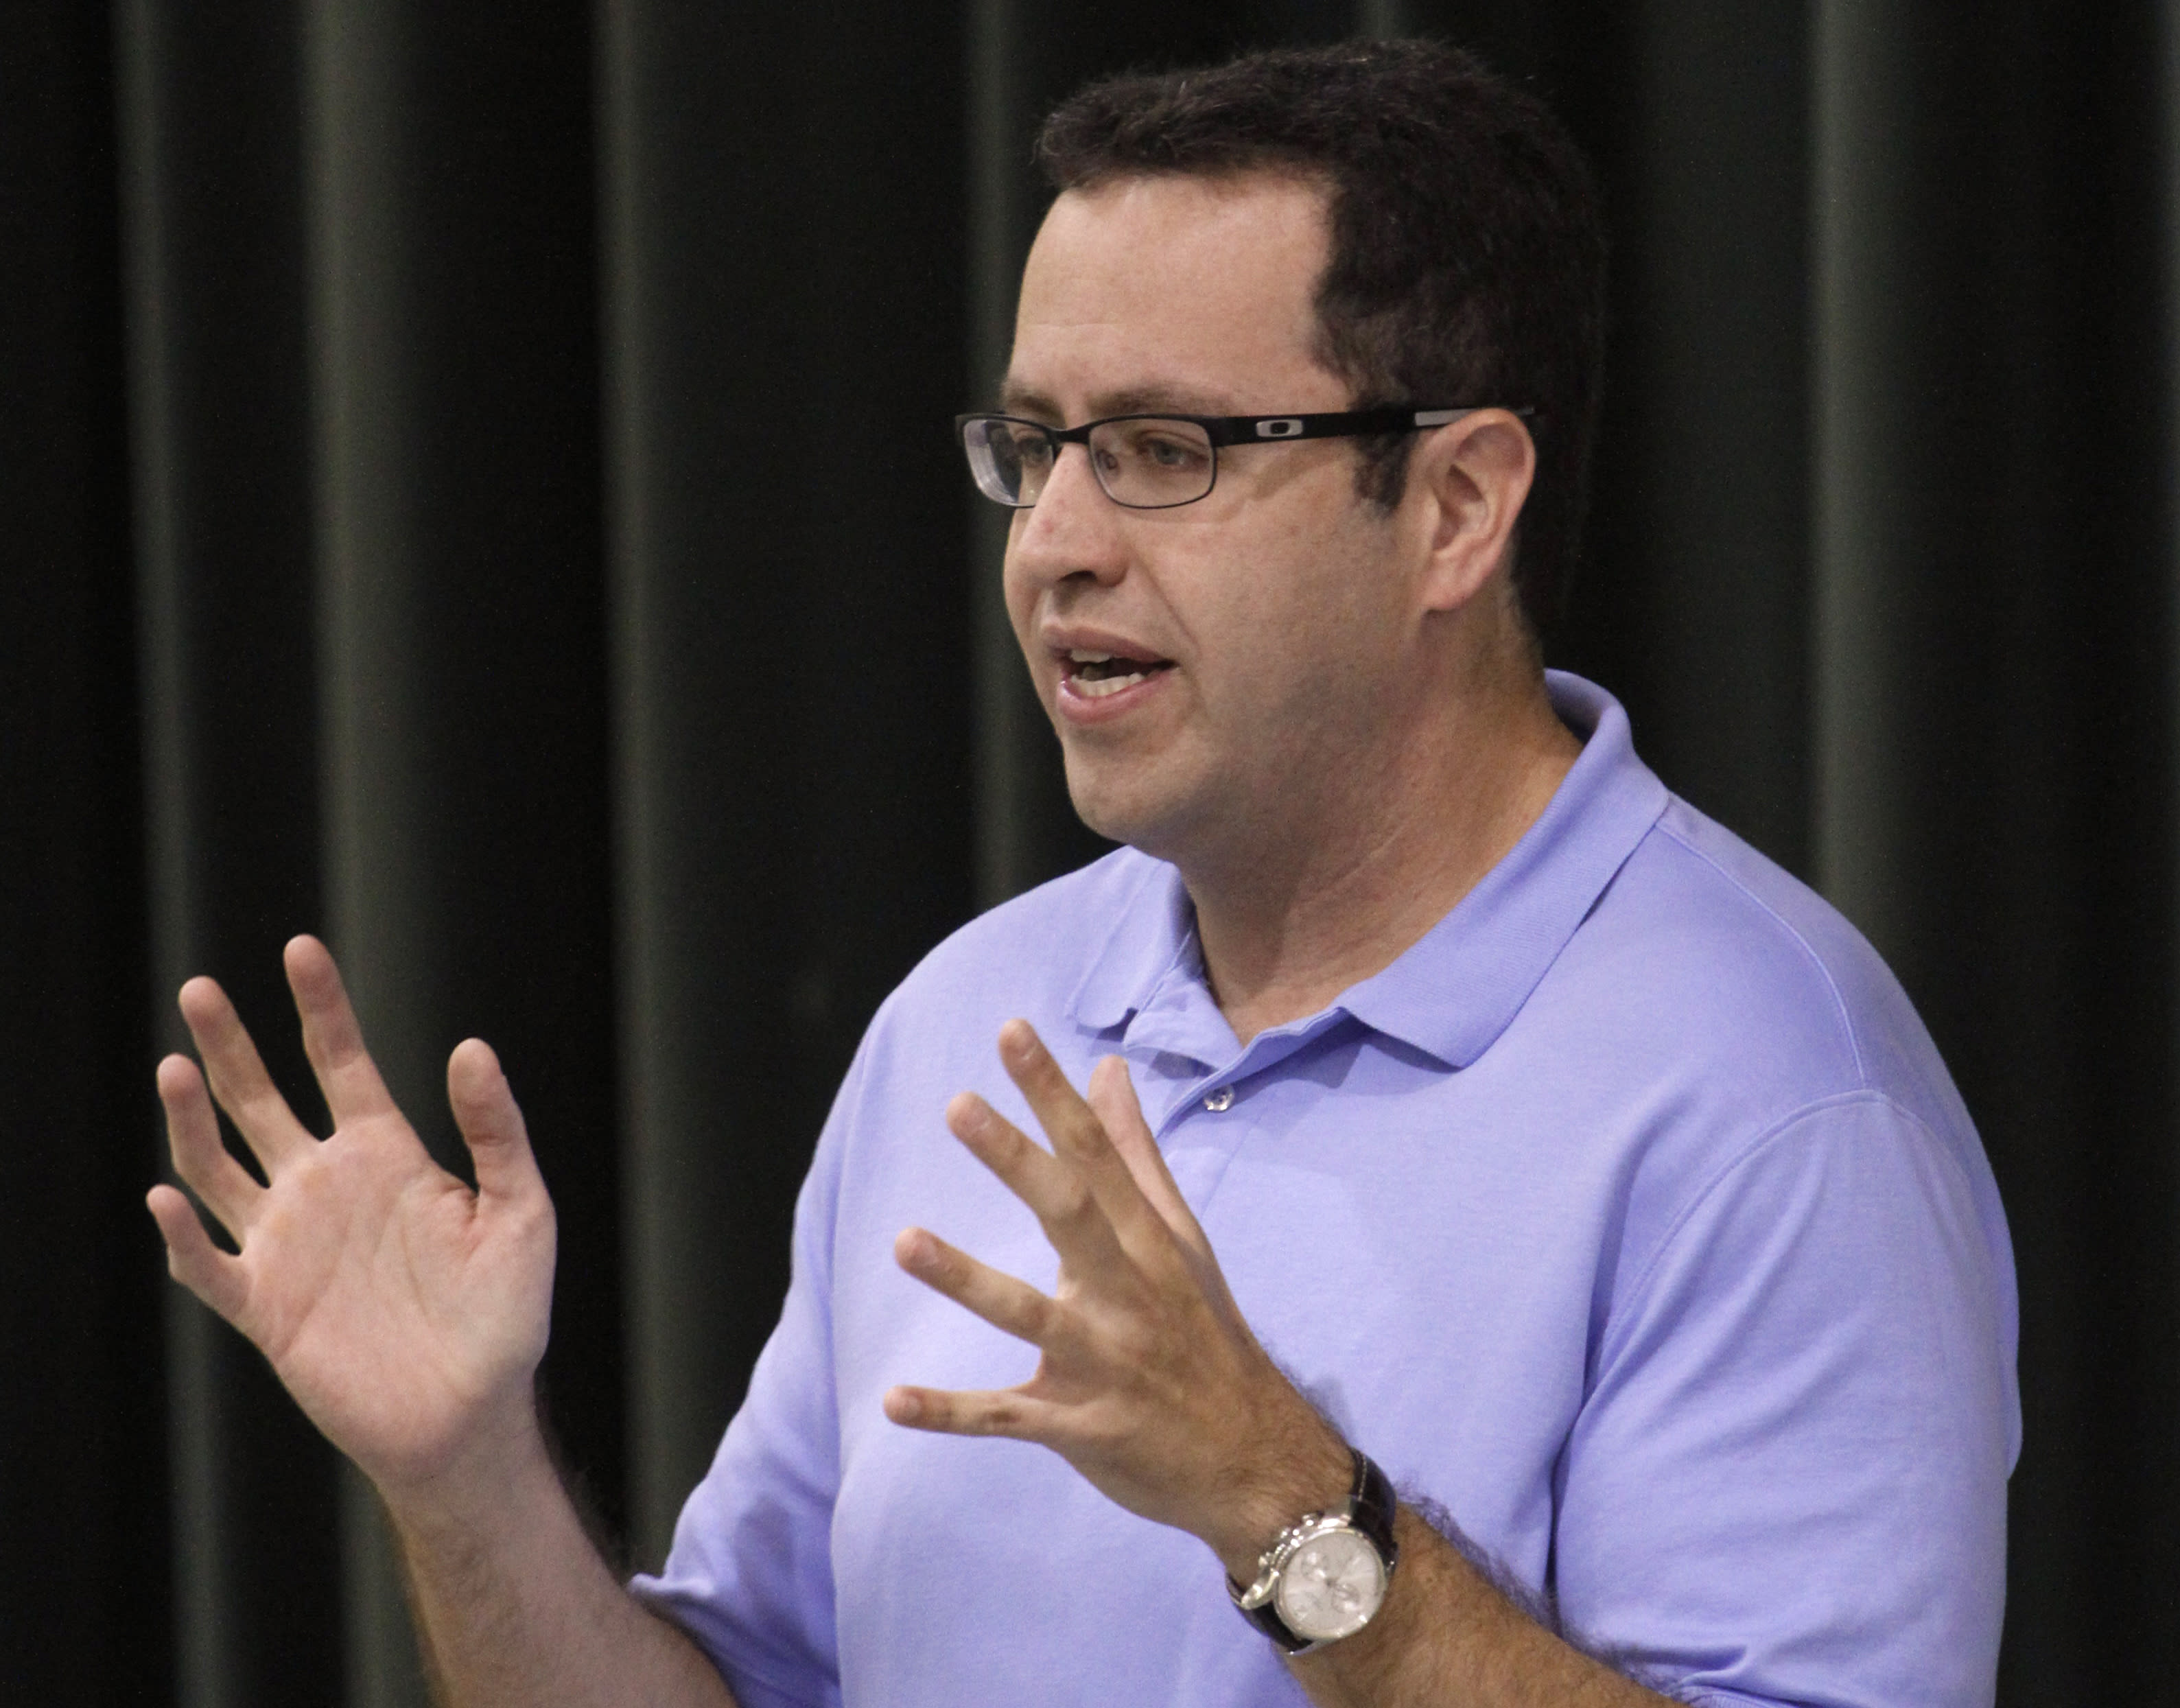 The Latest: Subway suspending relationship with Jared Fogle